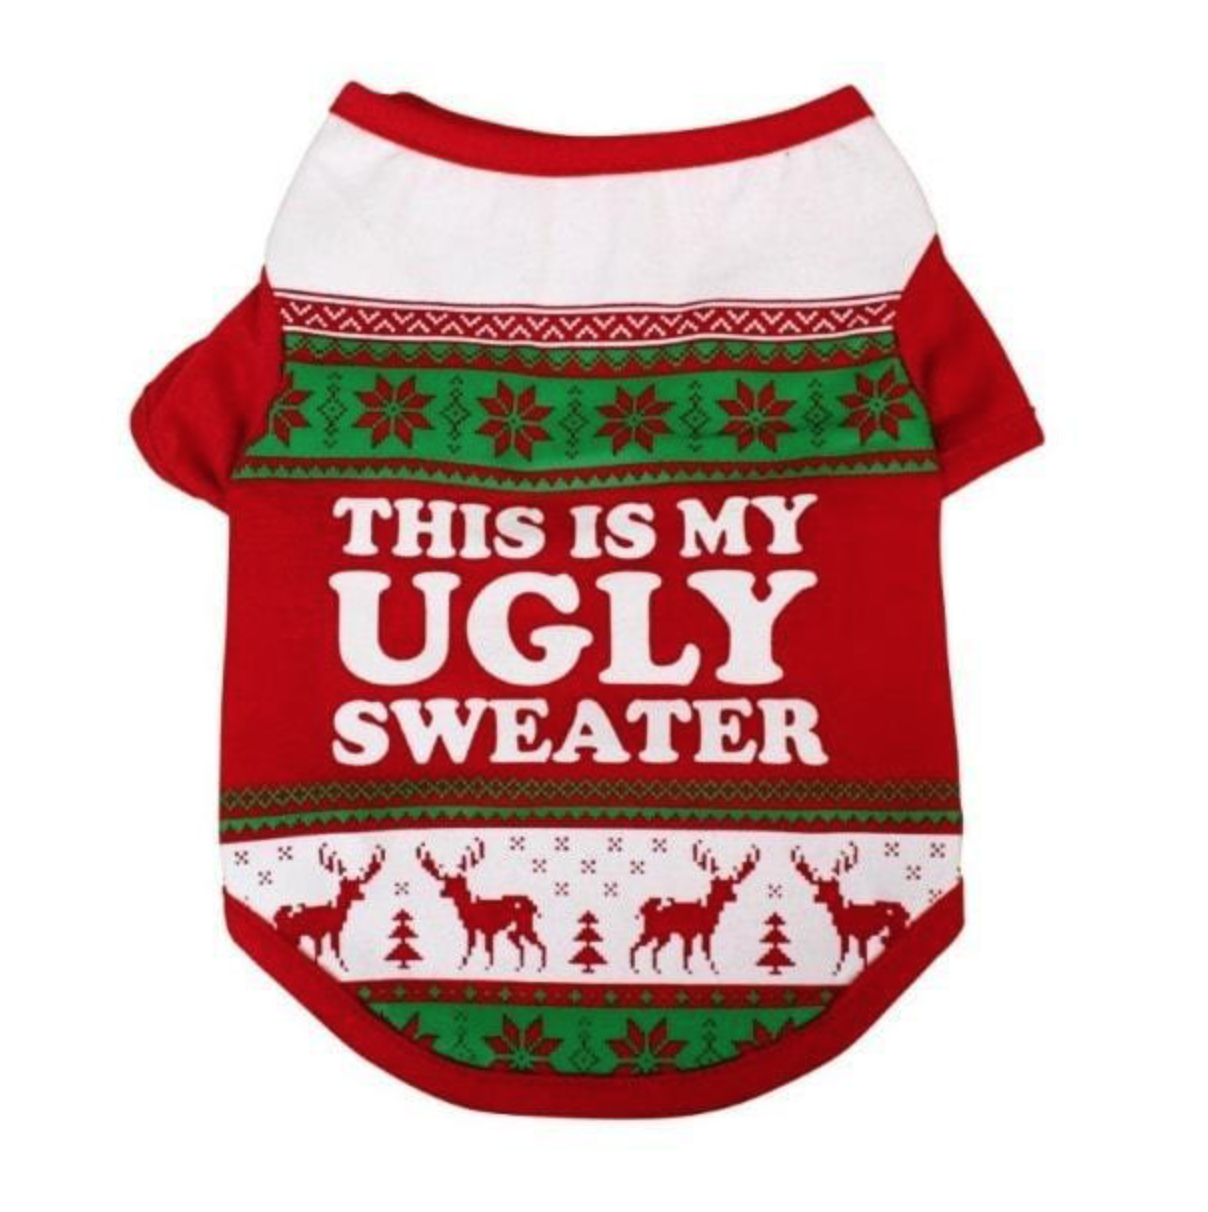 Ugly Christmas Sweaters for Dogs- The Cute Christmas Pet Sweater with A Humorous Touch